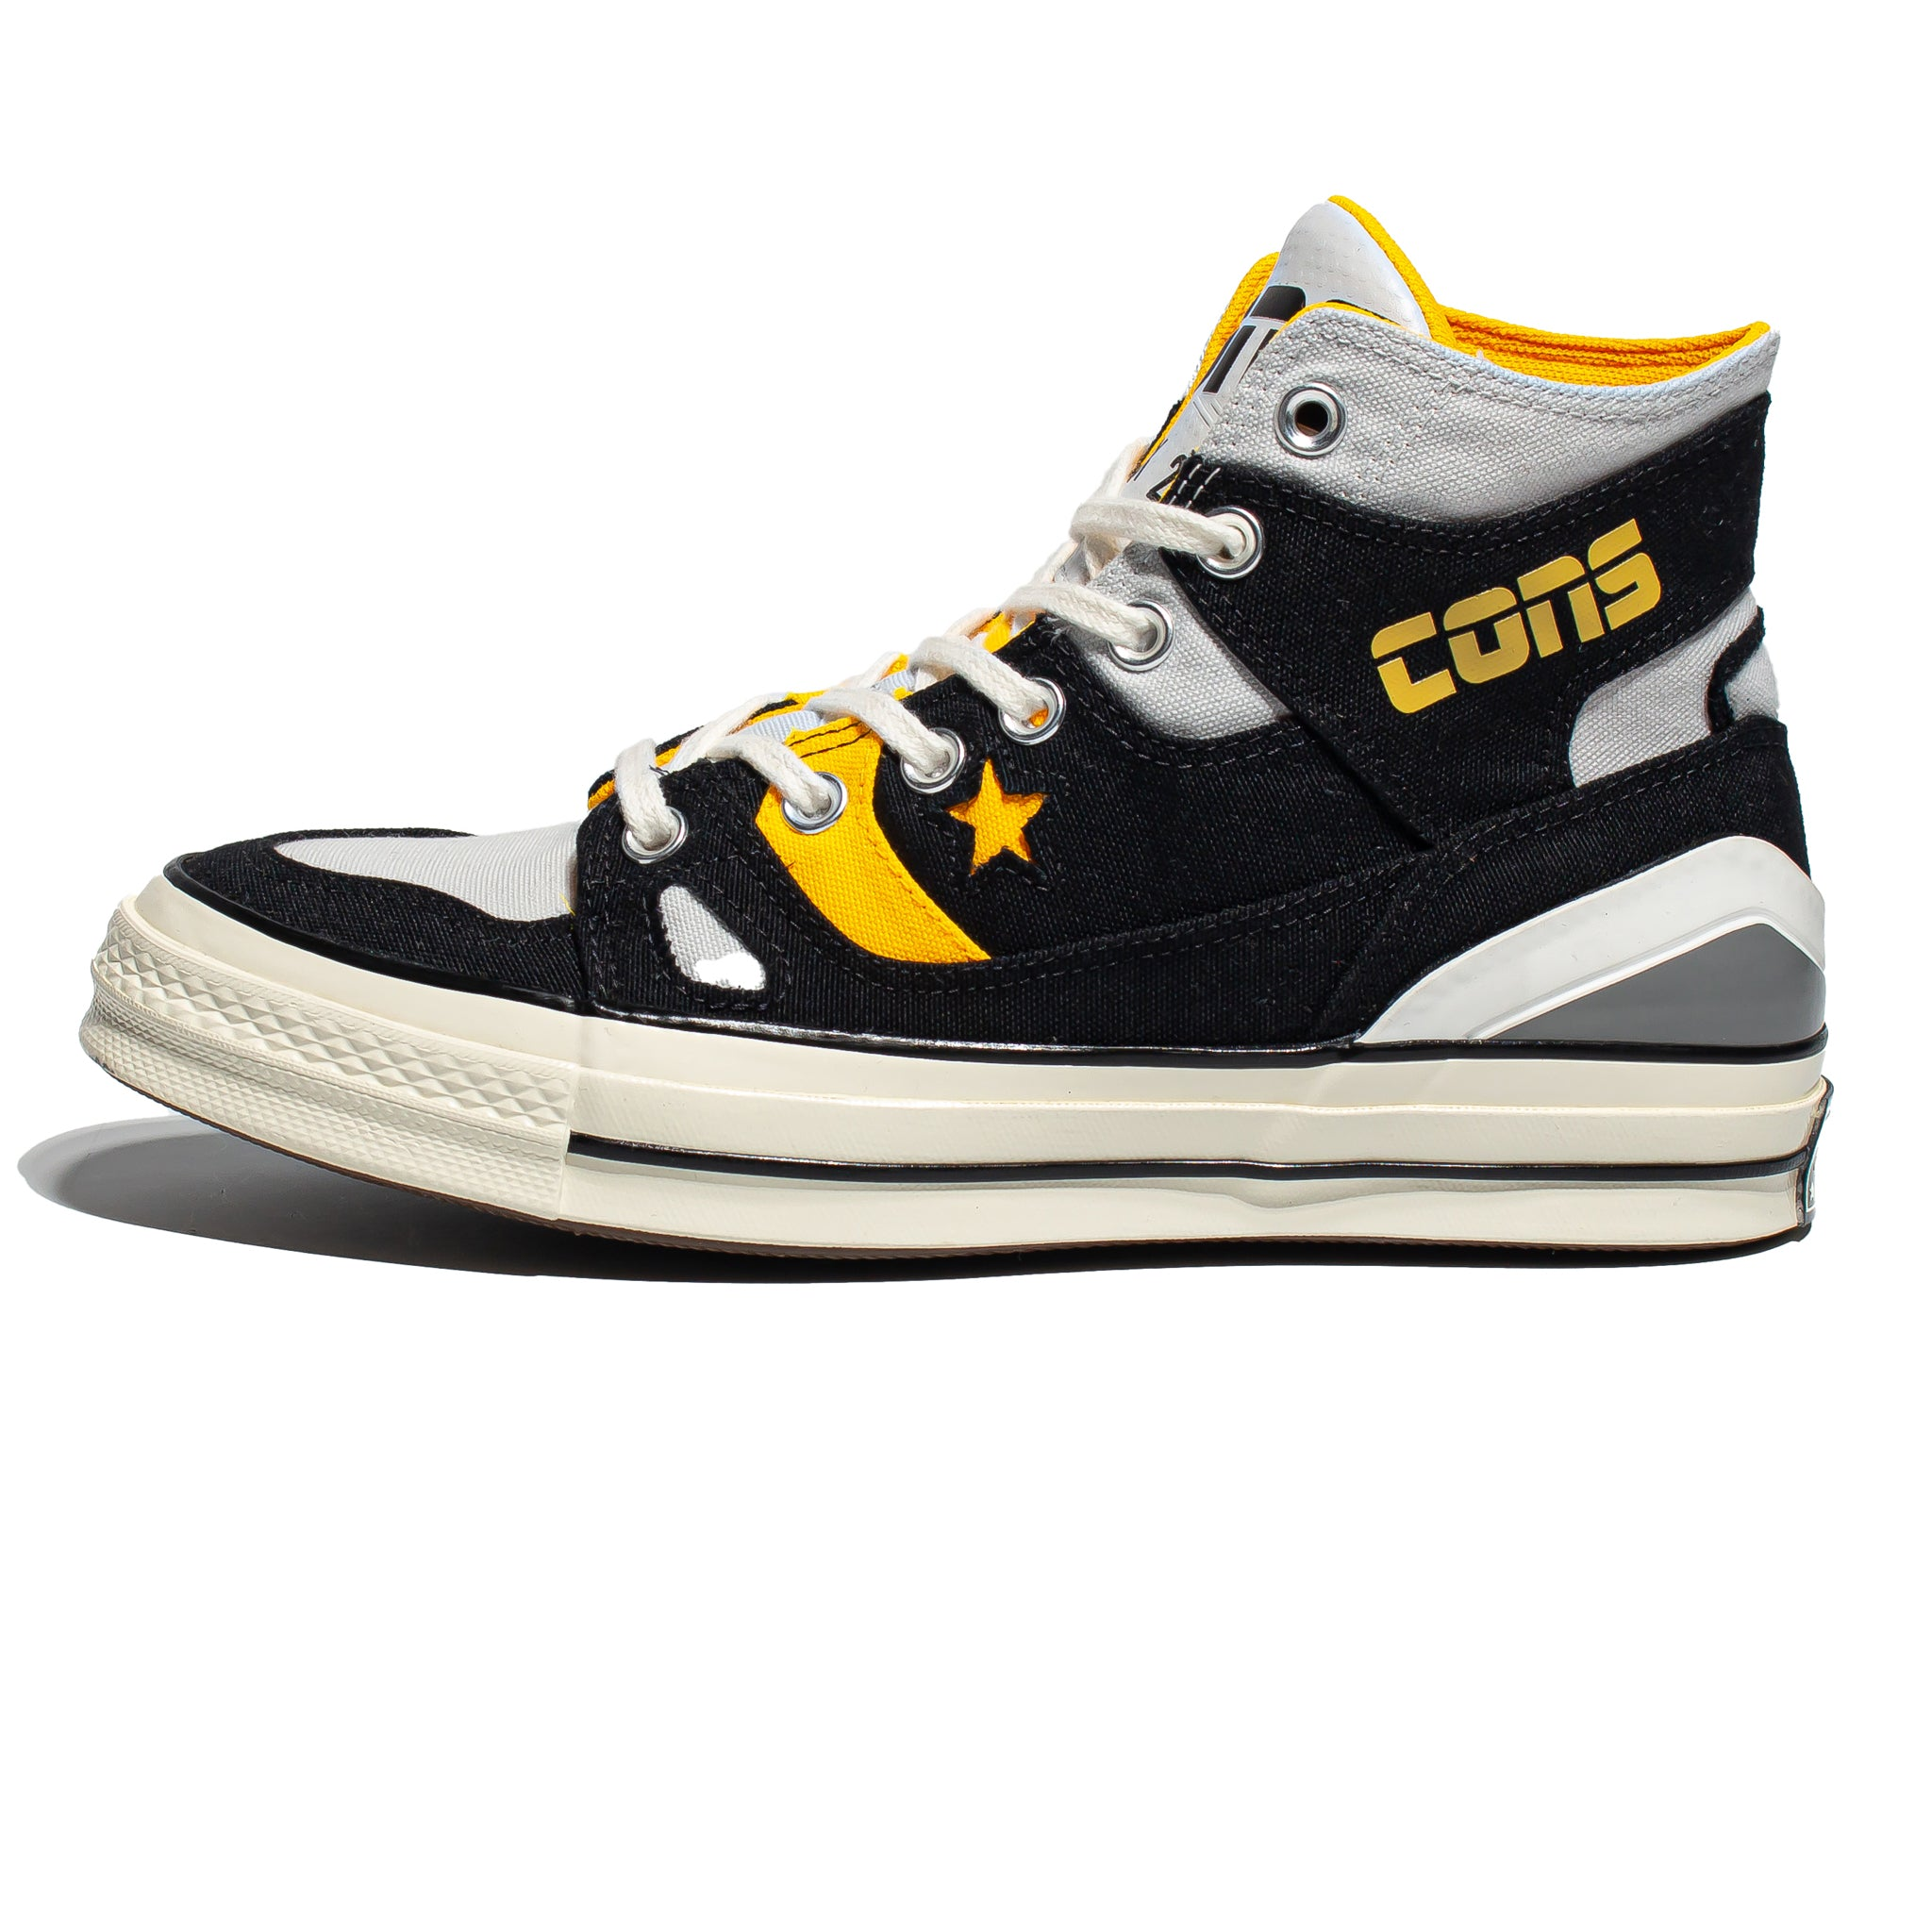 Converse Chuck 70 Hi 'E260' Black/Laser Orange